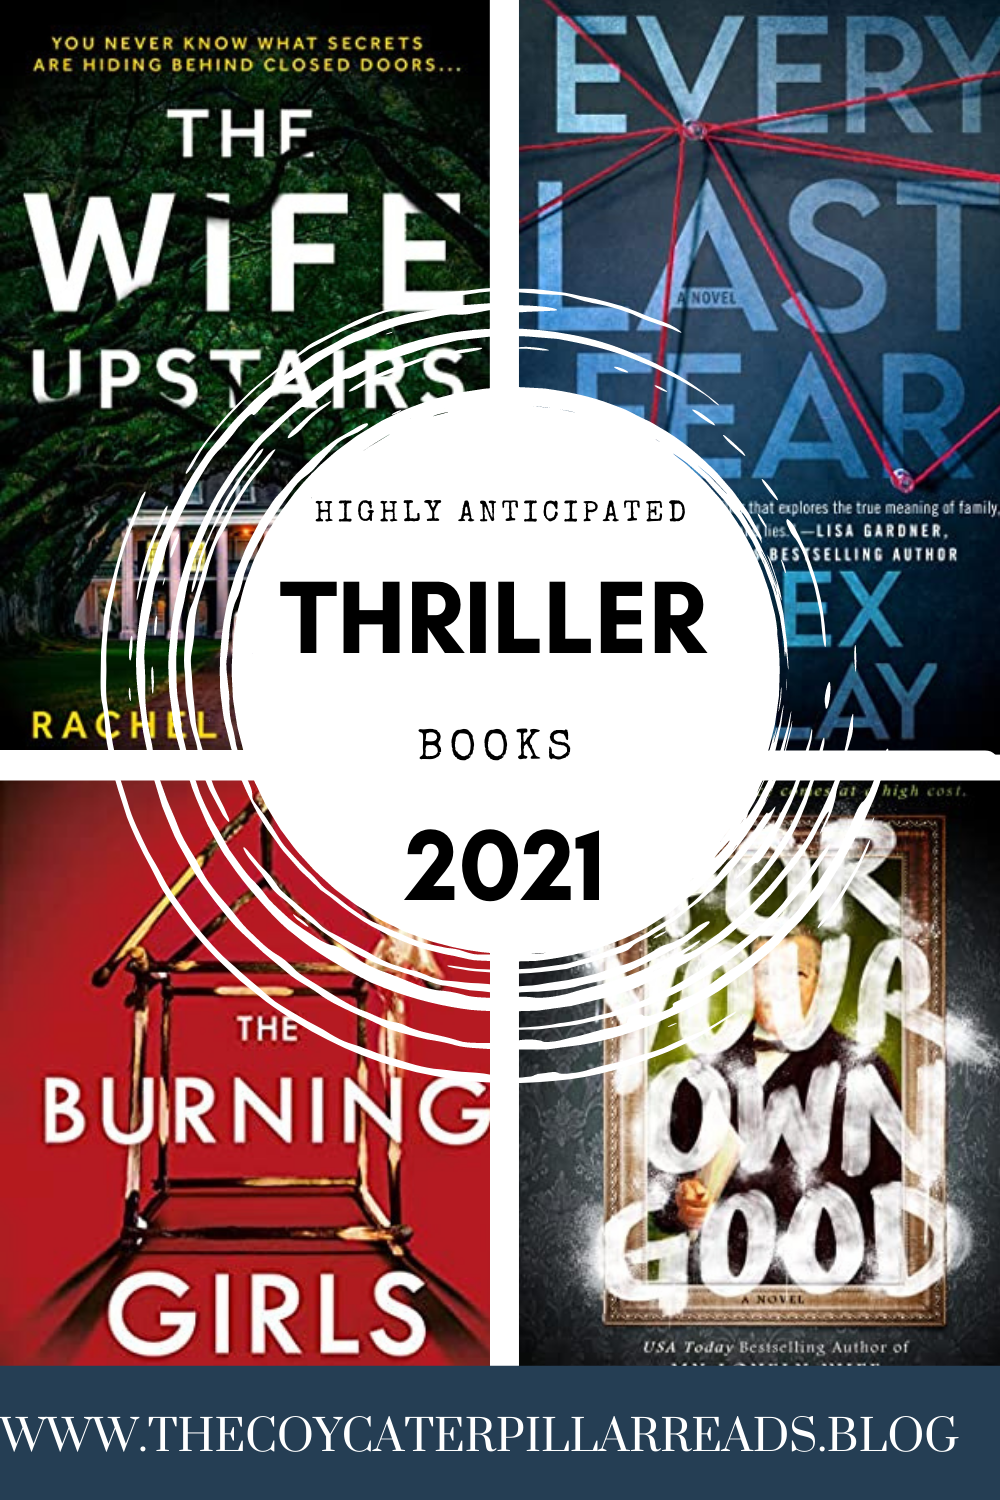 highly anticipated - 10 Highly Anticipated Thriller / Mystery Novels To Read in 2021